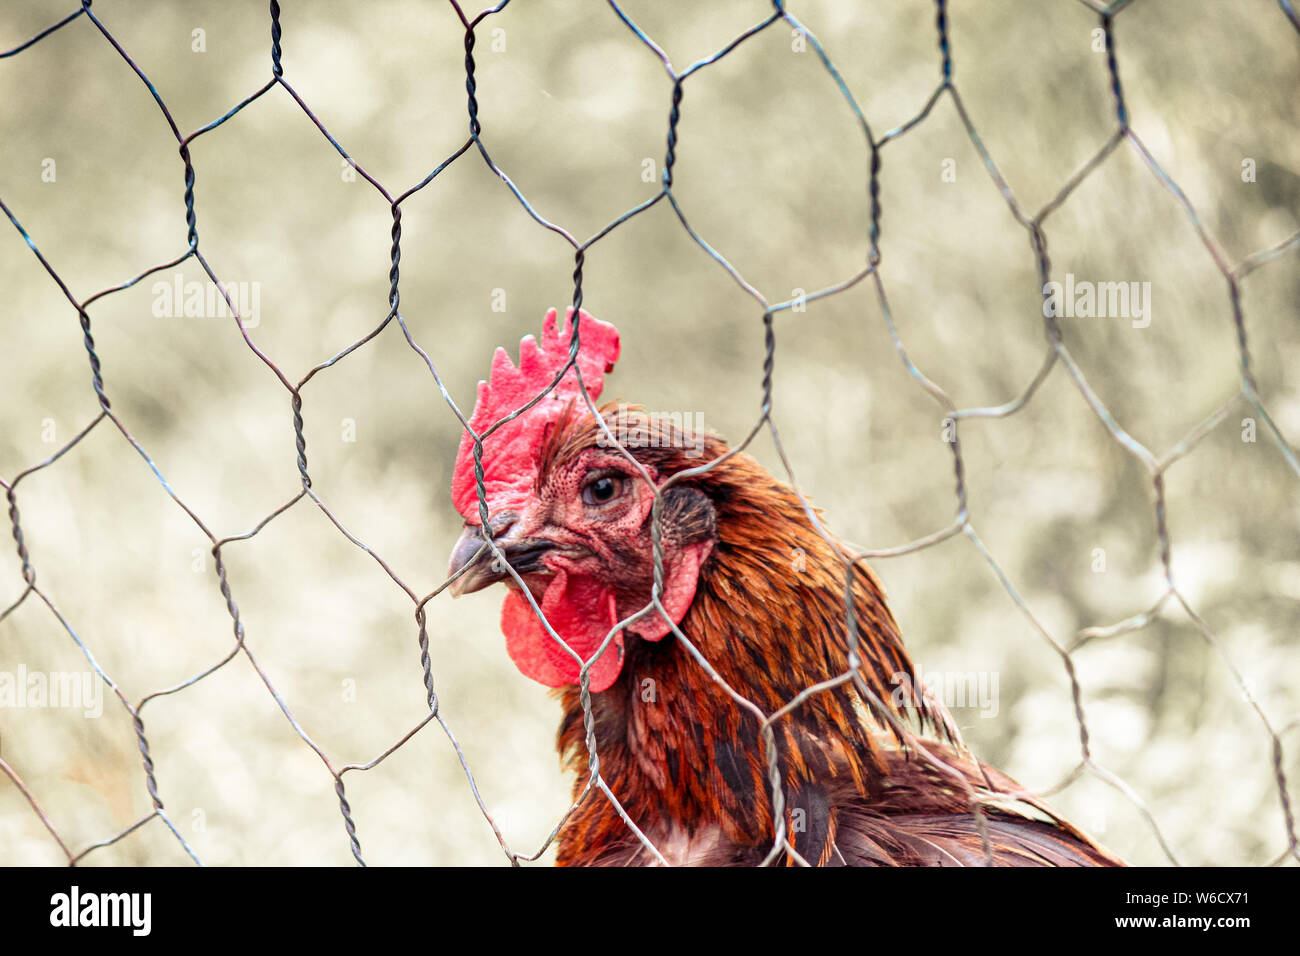 Sad brown hen in chicken cage. Behind fence. Animal abuse, cruelty to animals. Hen cages, battery cage. Chicken flu, diseases. Free range chickens. Blurred background. Stock Photo